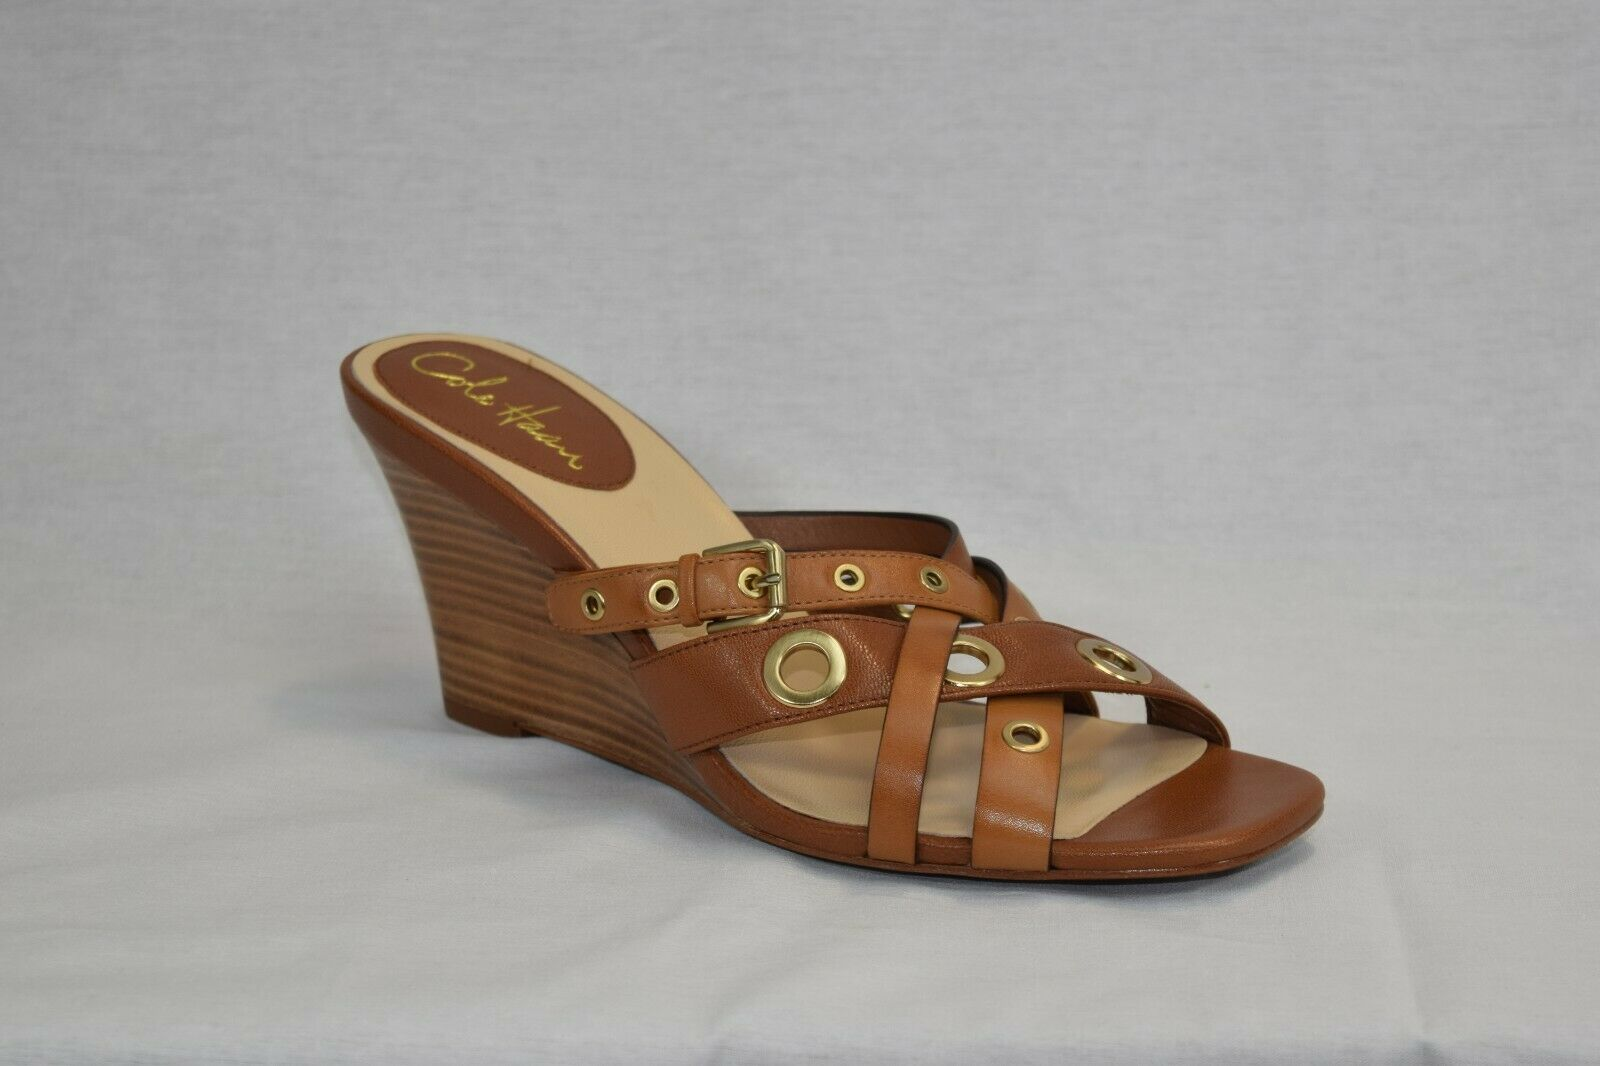 Cole Haan Air Whitney TAN Leather Slide Wedge Sandals shoes Sz 8 B